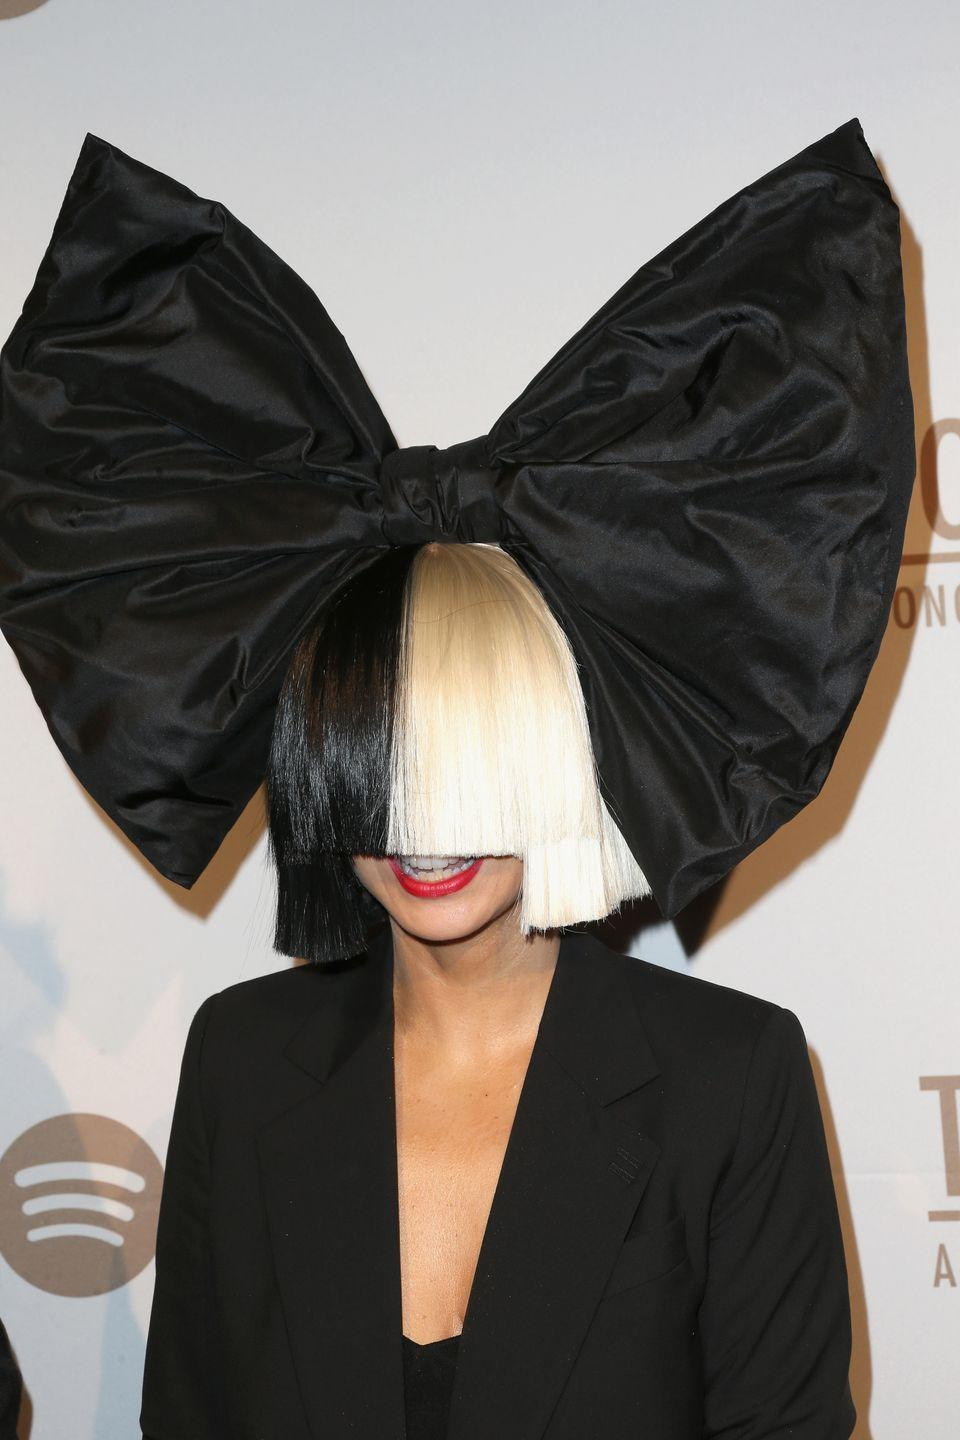 "<p>For years the singer Sia never let fans see her face, concealing her identity under a two-toned wig that came down past her nose. Why? ""If anyone besides famous people knew what it was like to be a famous person, they would never want to be famous,"" she wrote for <a href=""https://www.billboard.com/articles/5770456/my-anti-fame-manifesto-by-sia-furler"" rel=""nofollow noopener"" target=""_blank"" data-ylk=""slk:Billboard"" class=""link rapid-noclick-resp"">Billboard</a> in 2013. Fair enough.</p>"